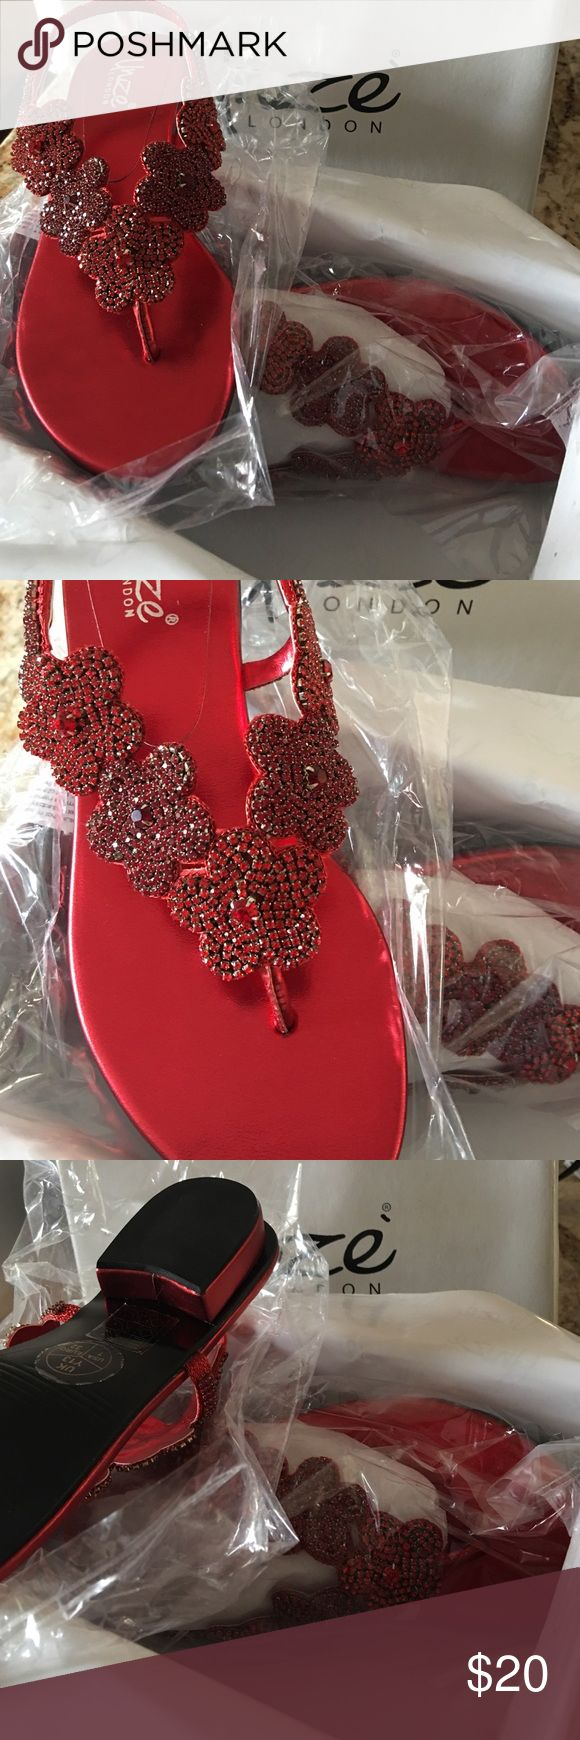 Girls size 1 sandal by Unze London Red sandal with black sole. Has about 1/2 in heel. Very detailed with Beautiful beaded flowers. Brand new with box. NWT unze london Shoes Sandals & Flip Flops